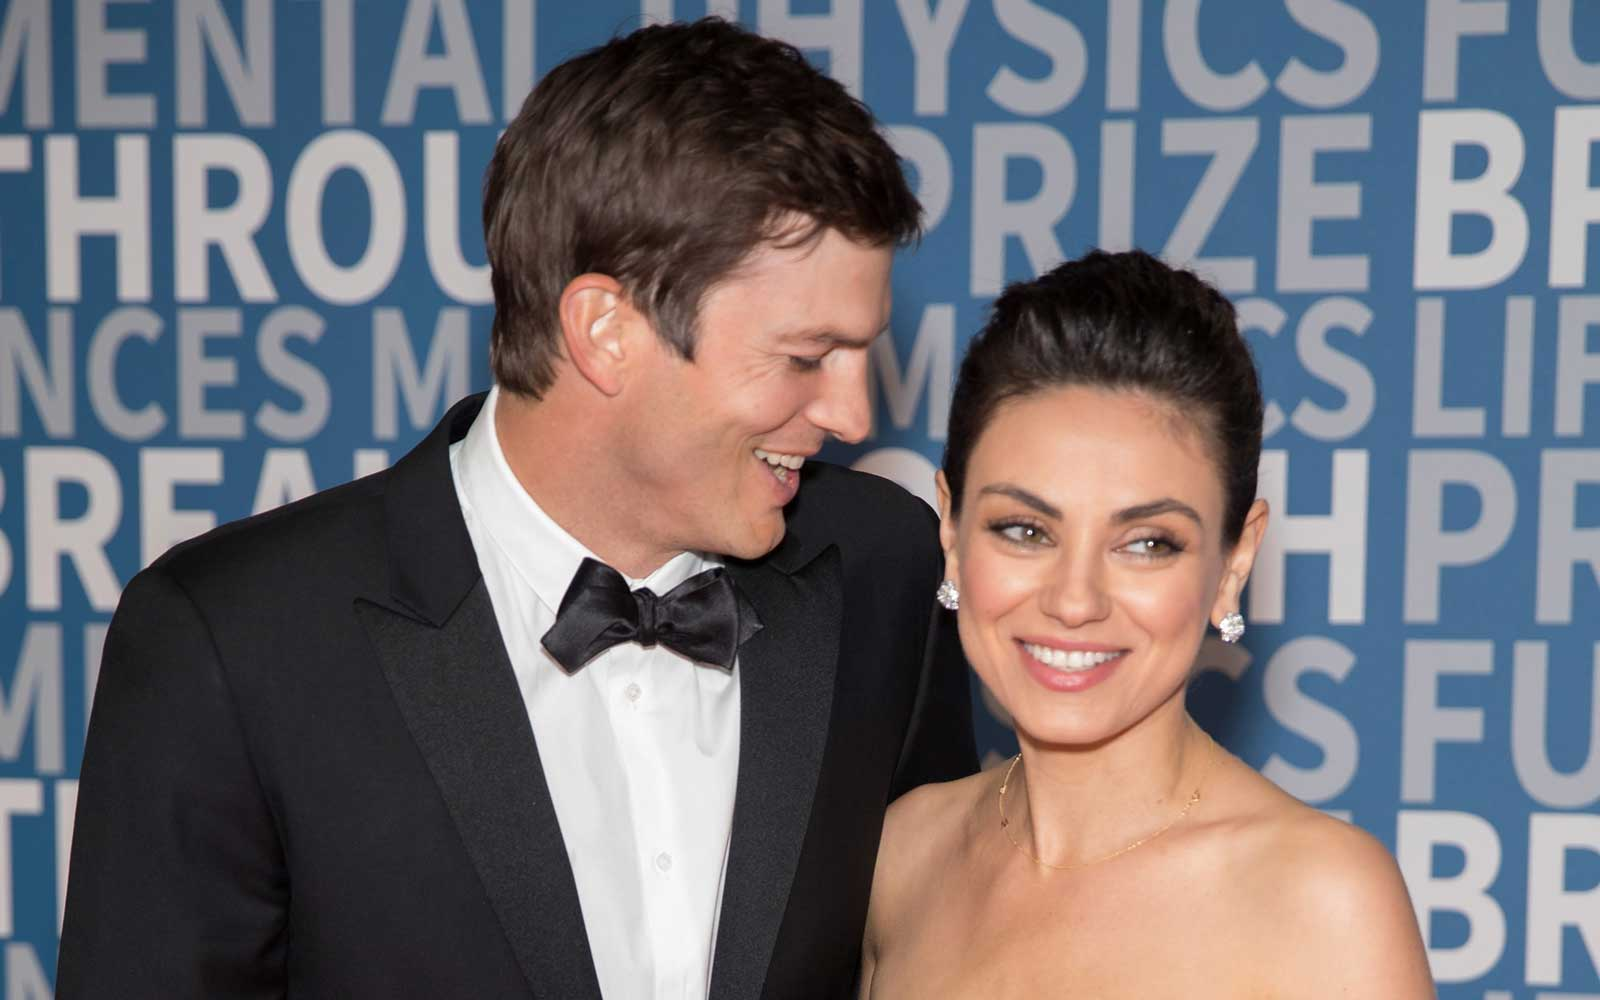 Mila Kunis Spilled All the Details on Her Hilariously Disastrous Honeymoon With Ashton Kutcher (Video)